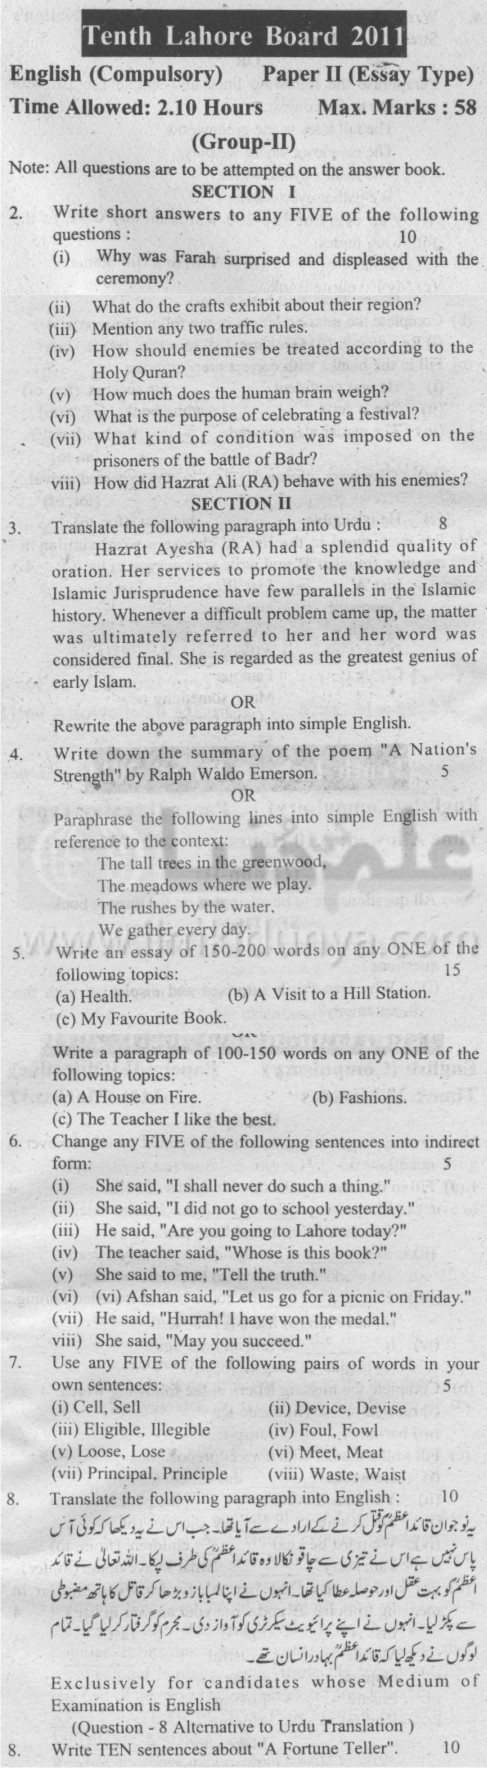 Essay Class My Classroom Essay An English Essay On My Classroom For  Th Class English Compulsory Essay Type Group Ii Lahore Board